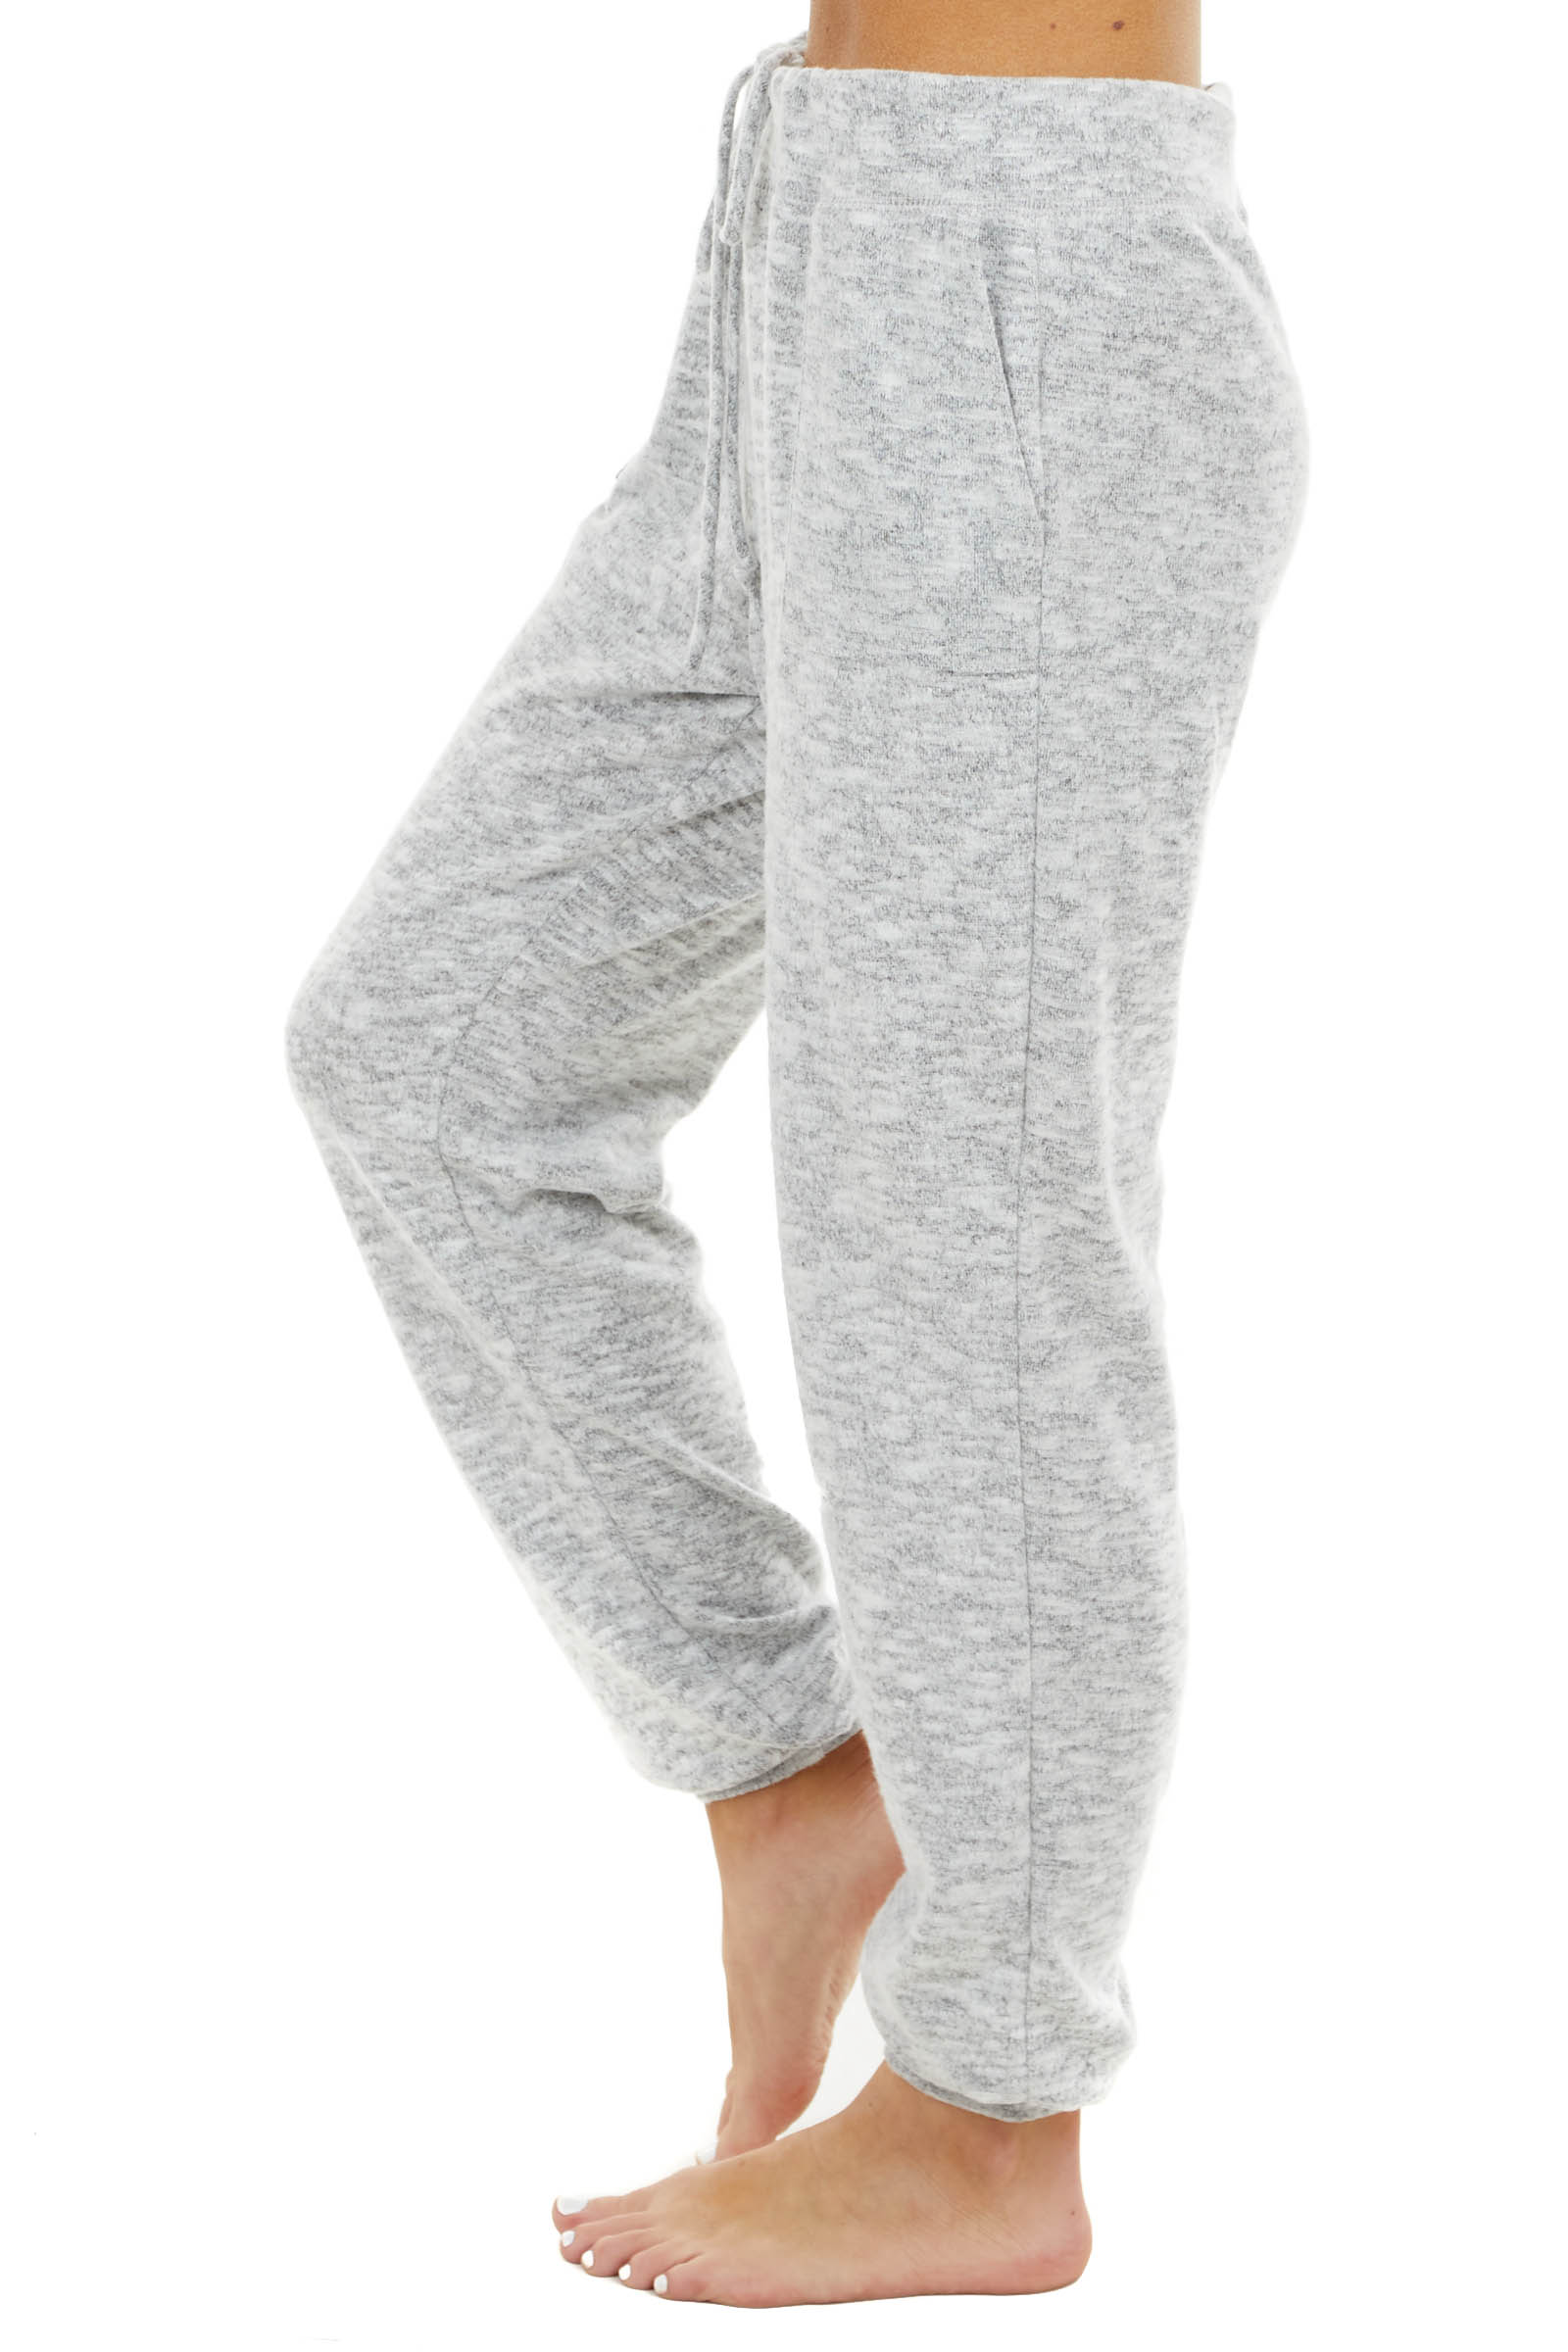 Heathered Dove Grey Stretchy Knit Joggers with Pockets